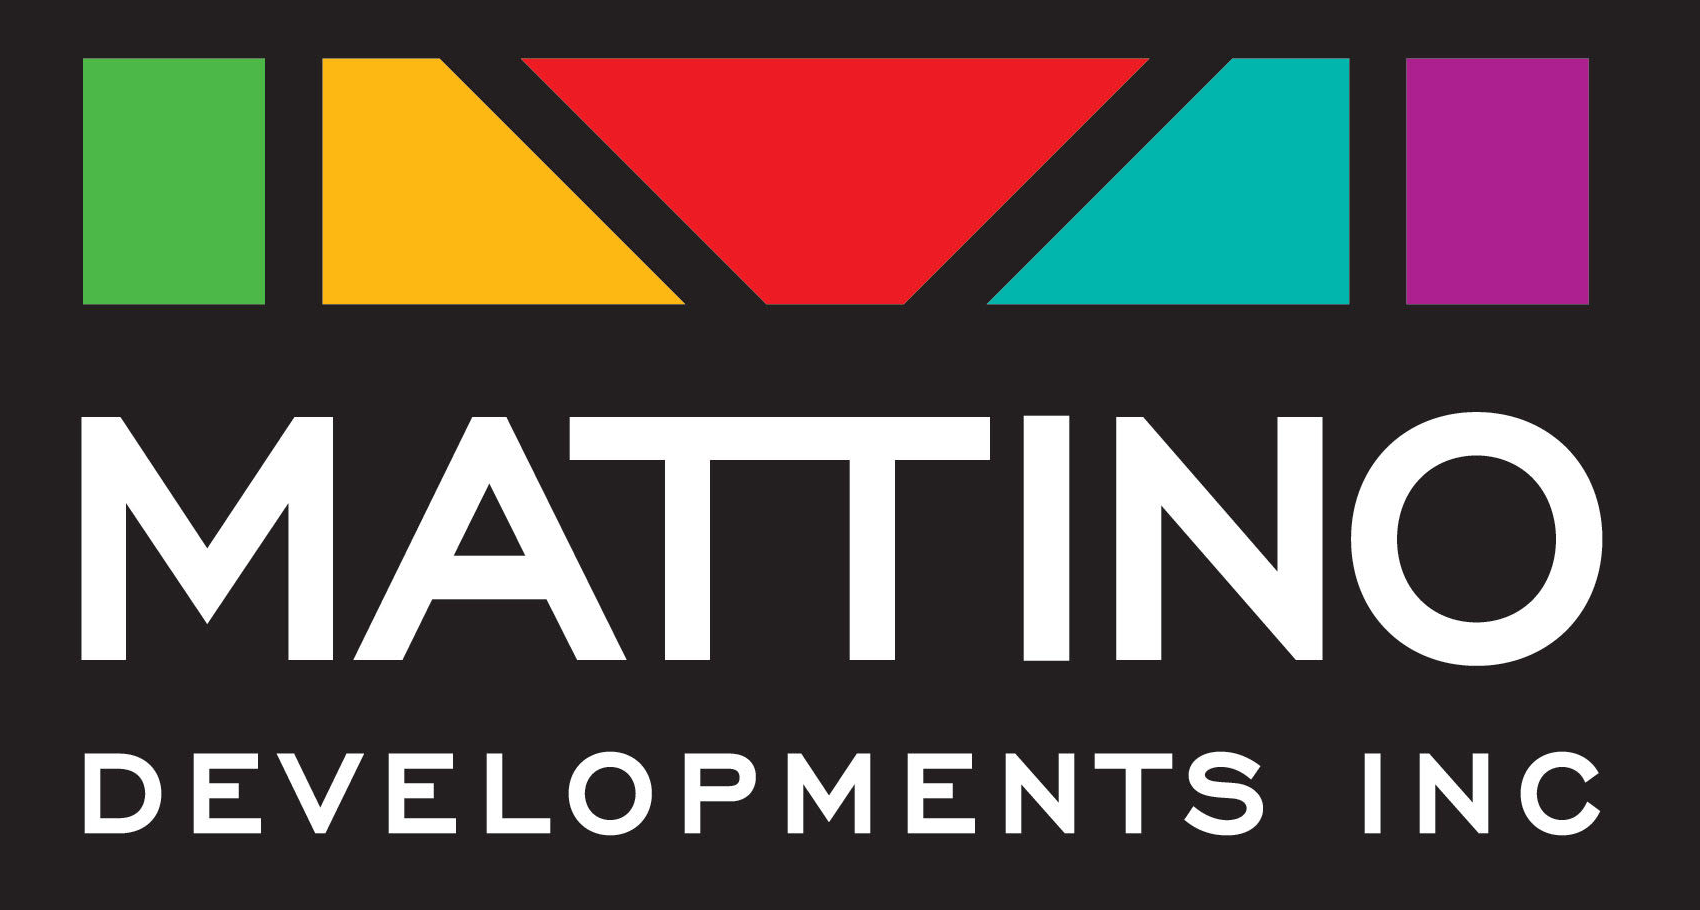 Mattino Developments Inc. Ottawa's premier new home builder.